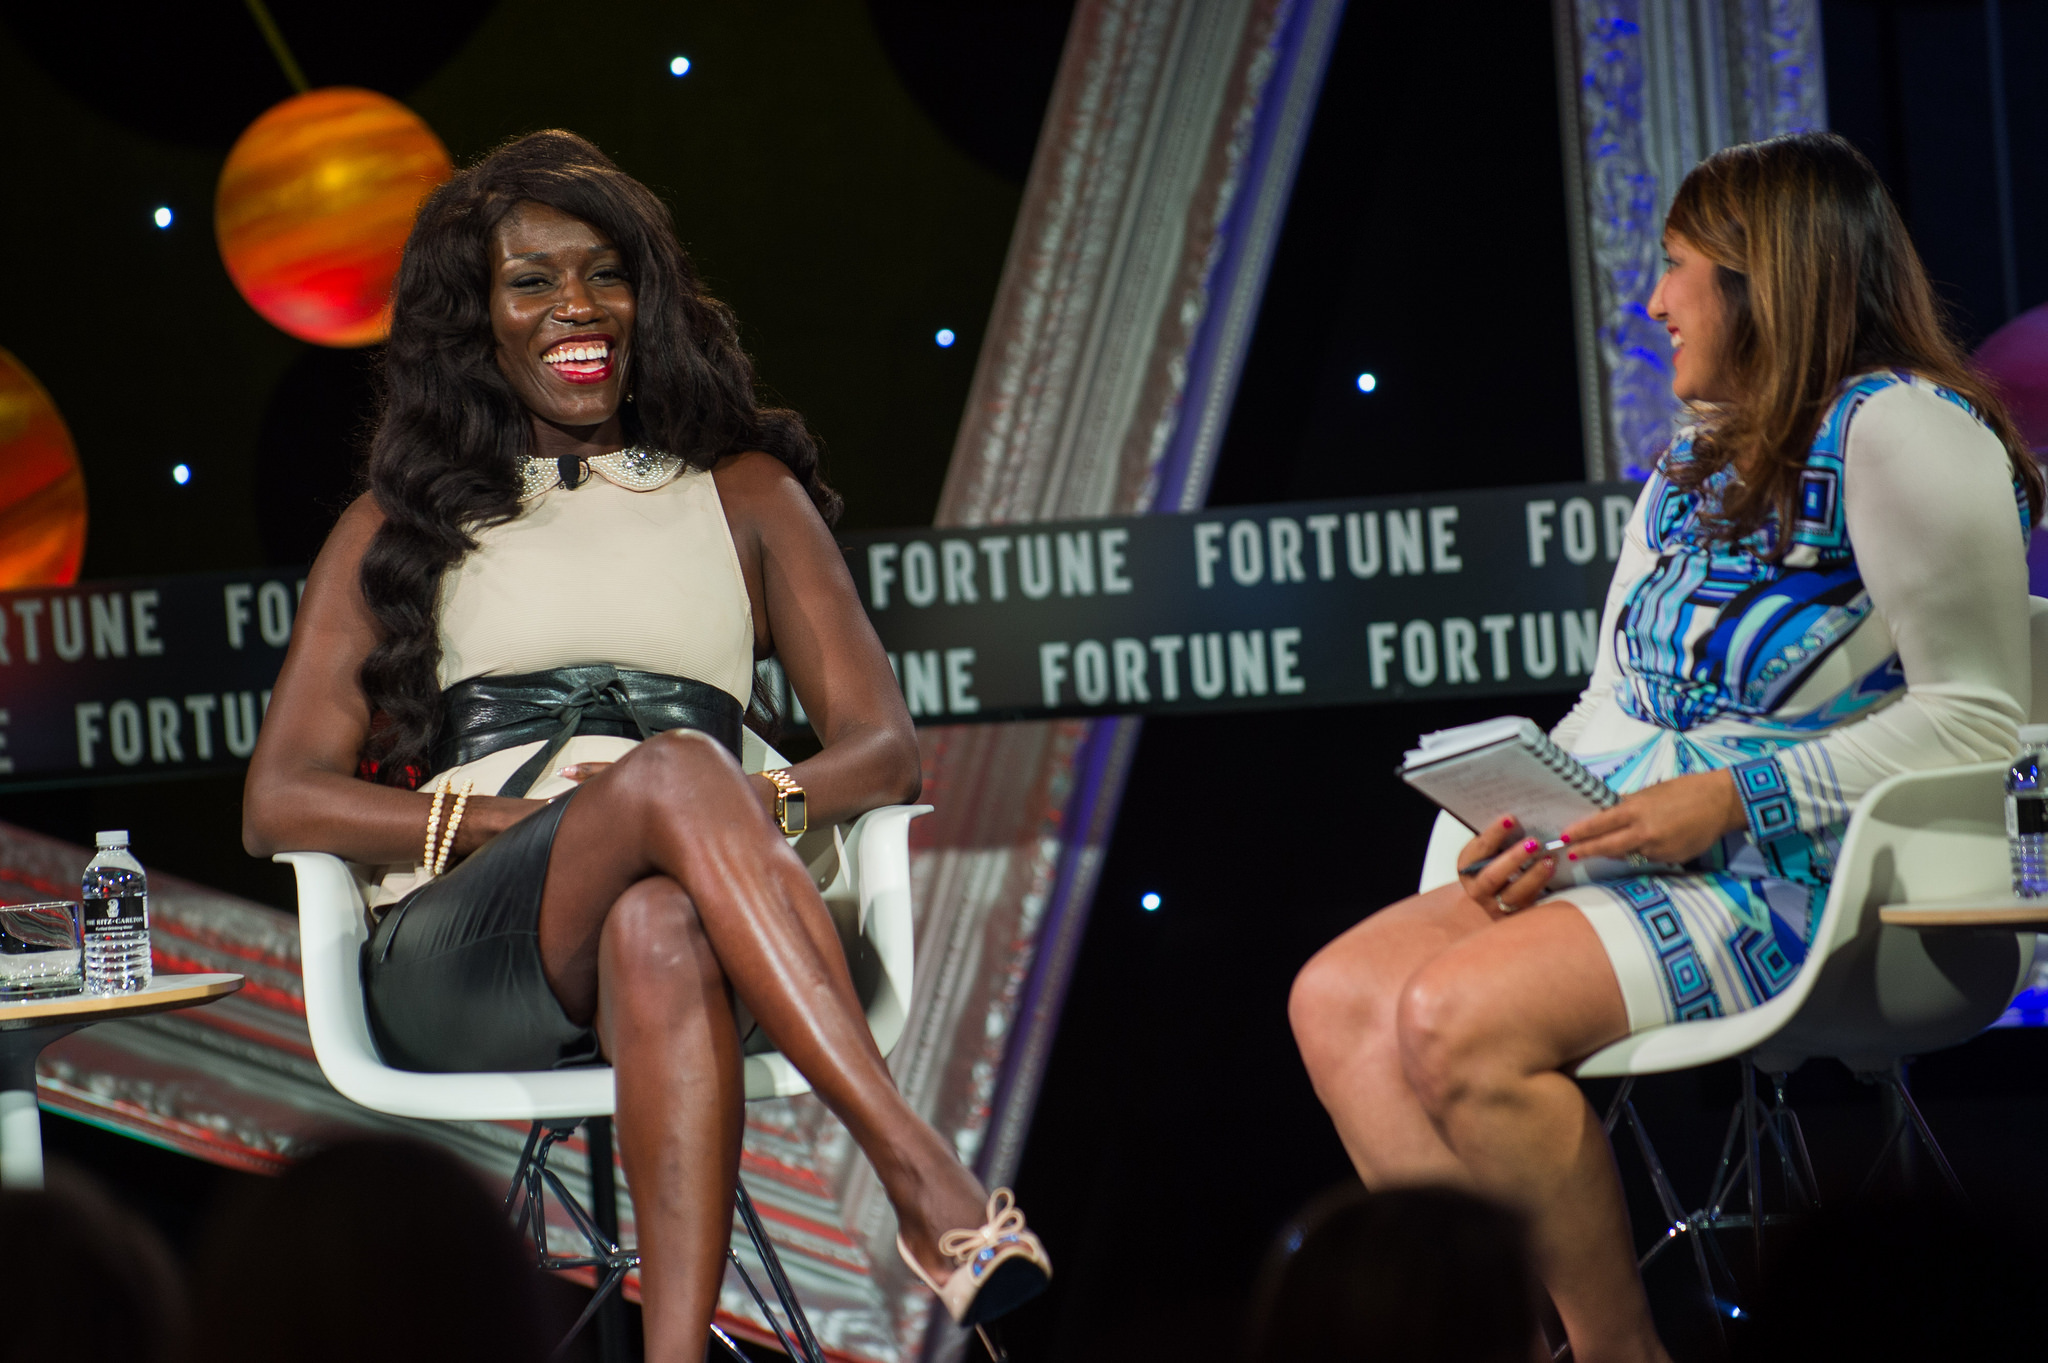 Apple's Bozoma Saint John (left) with Fortune's Leena Rao at the Next Gen 2016 conference in Laguna Nigel, Calif.